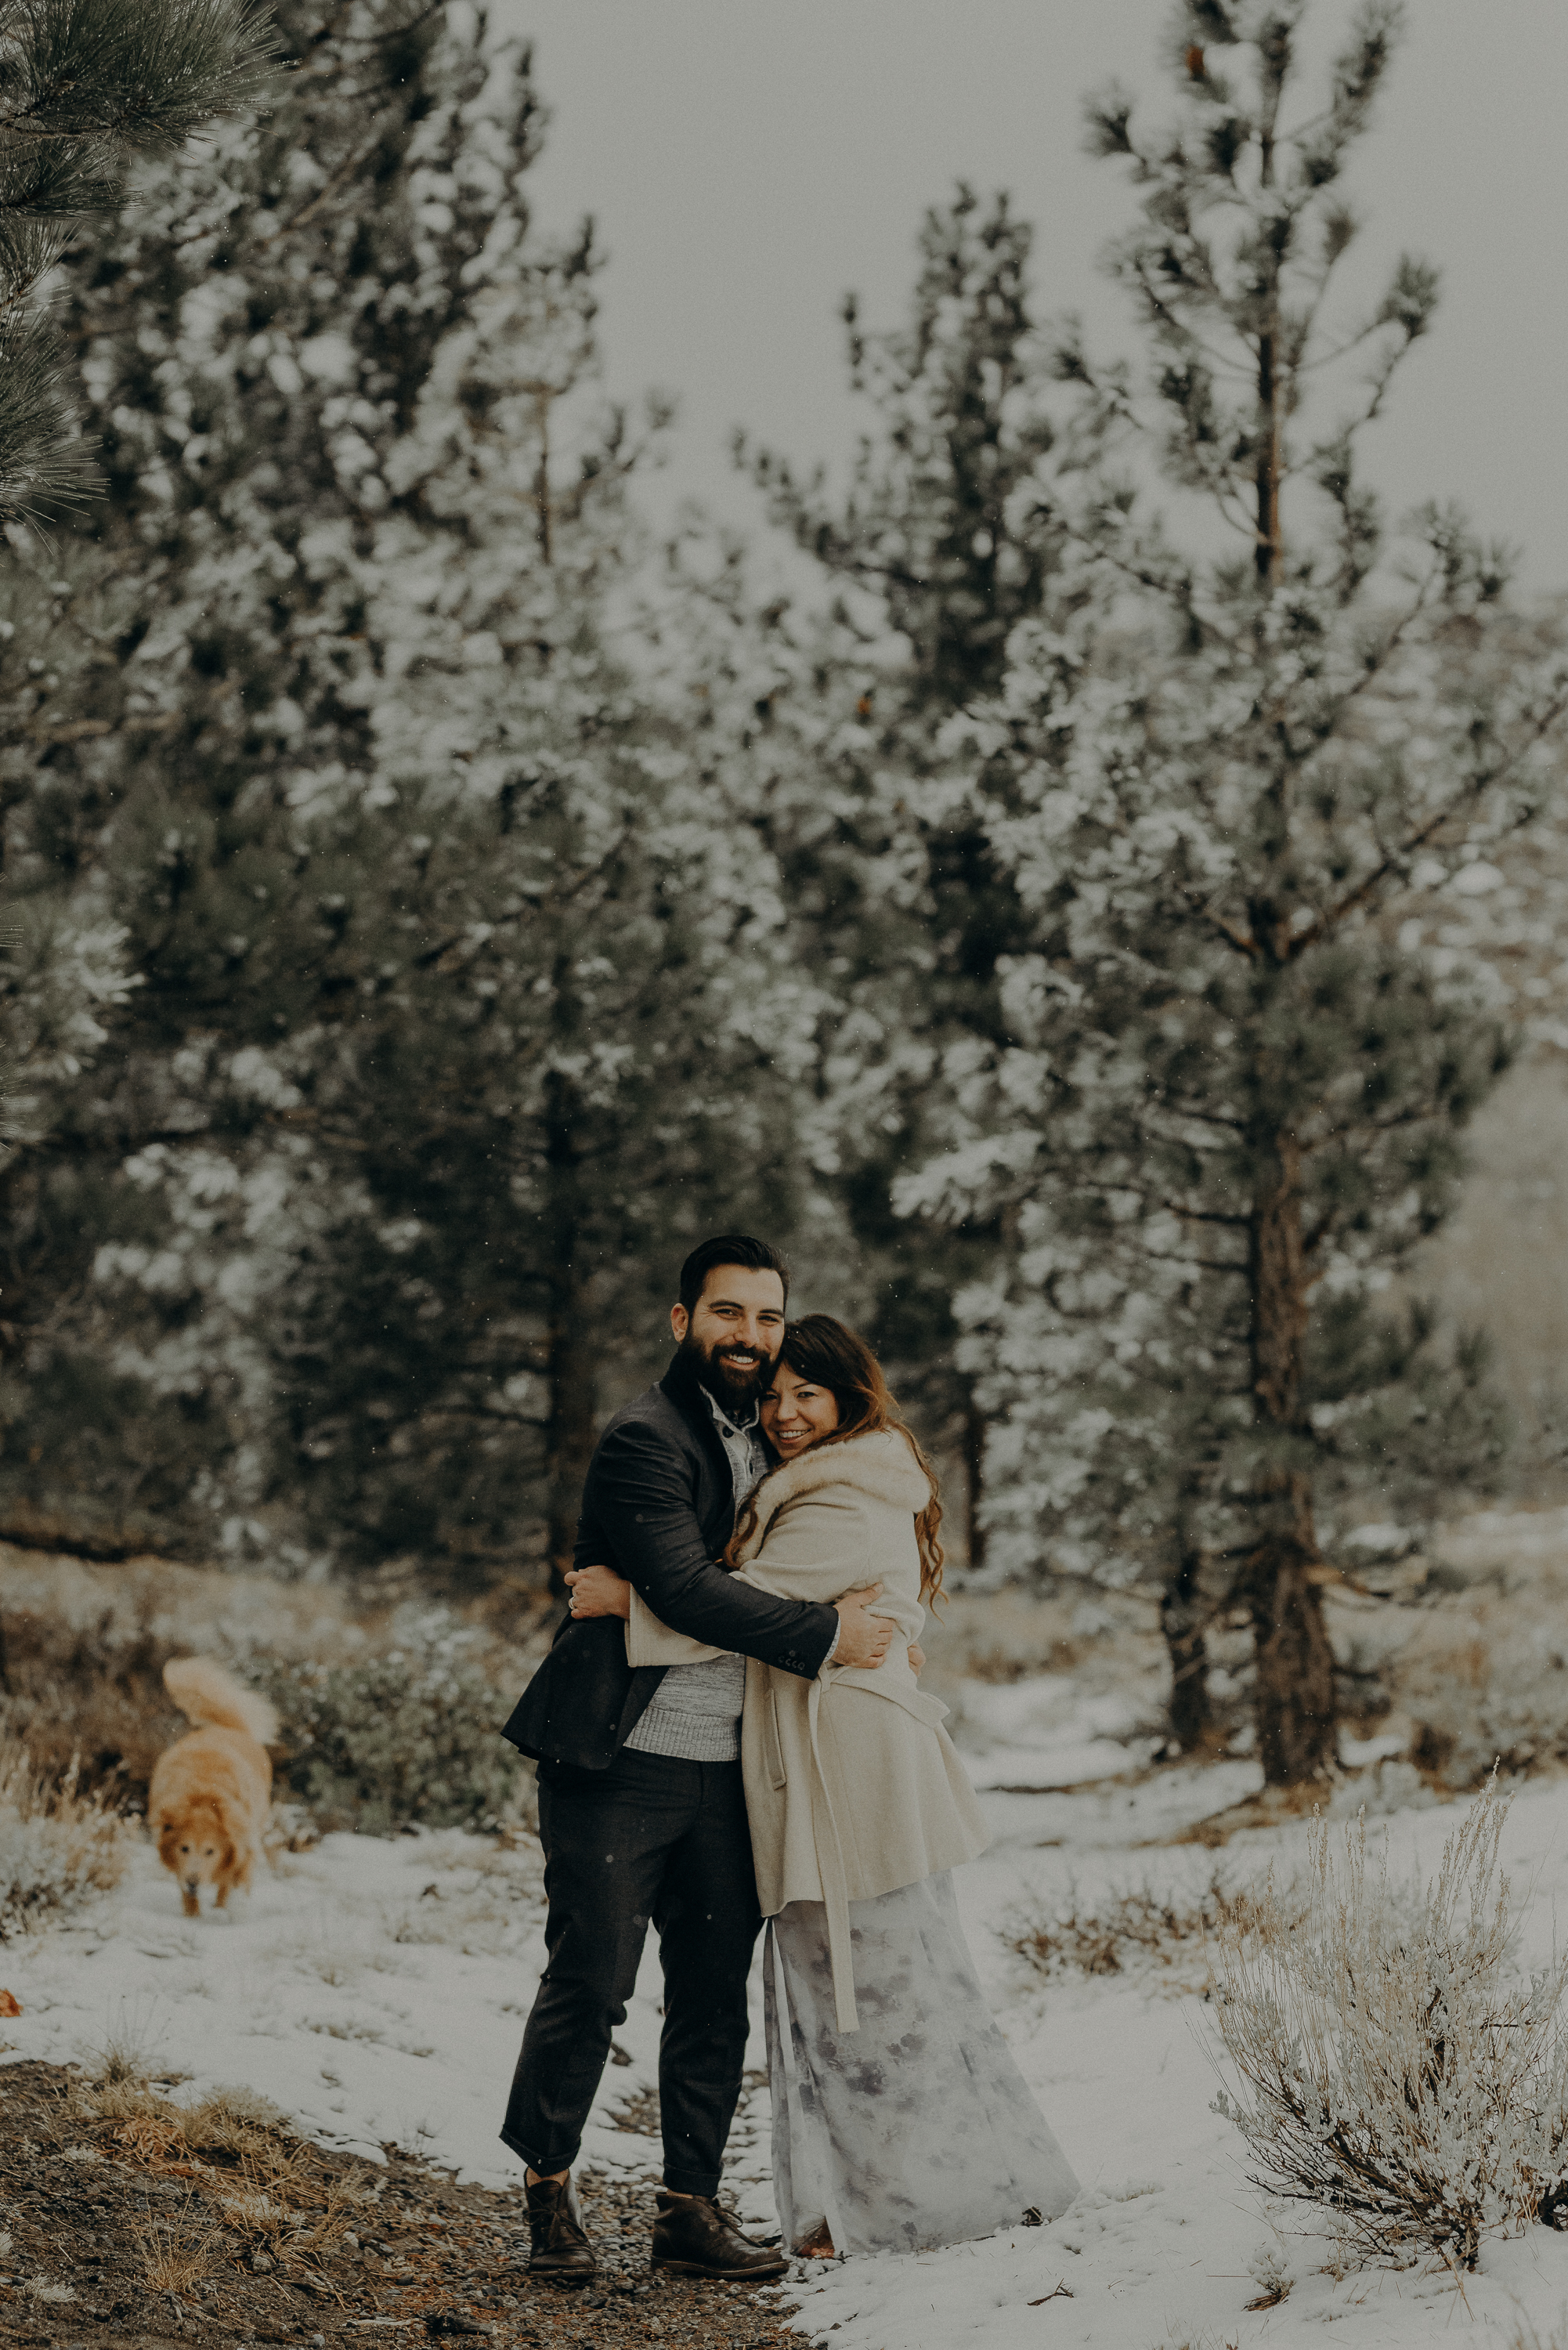 ©Isaiah + Taylor Photography - Los Angeles Wedding Photographer - Snowing engagement session-005.jpg